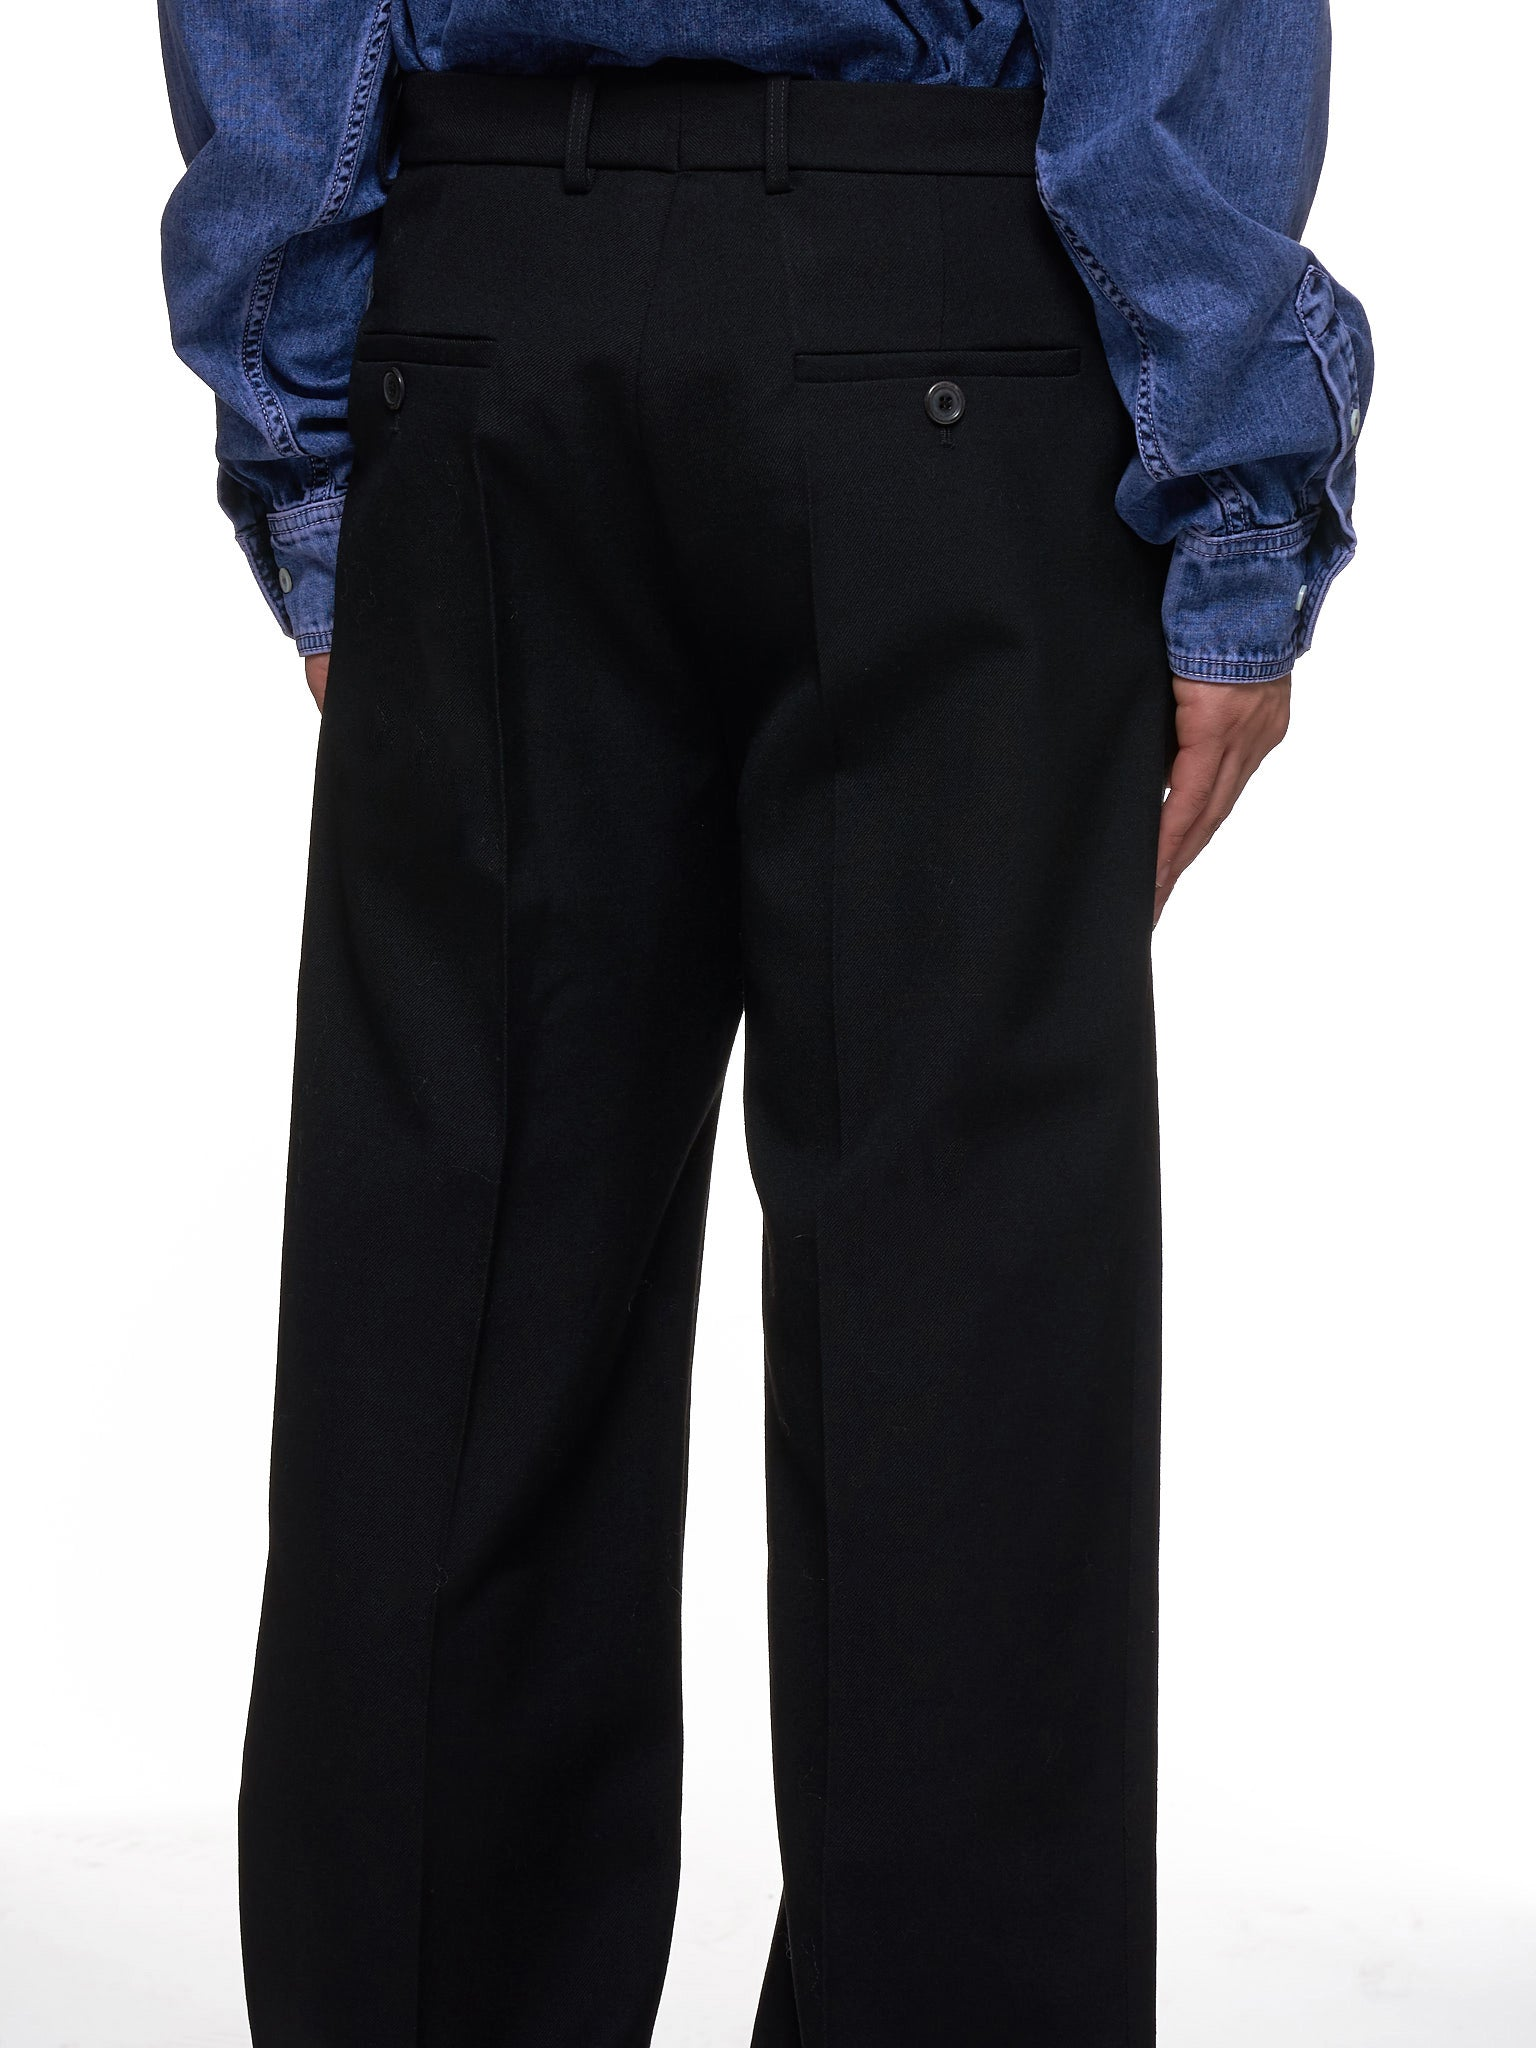 Wool Trousers (PANT41-S17-F01-BLACK)